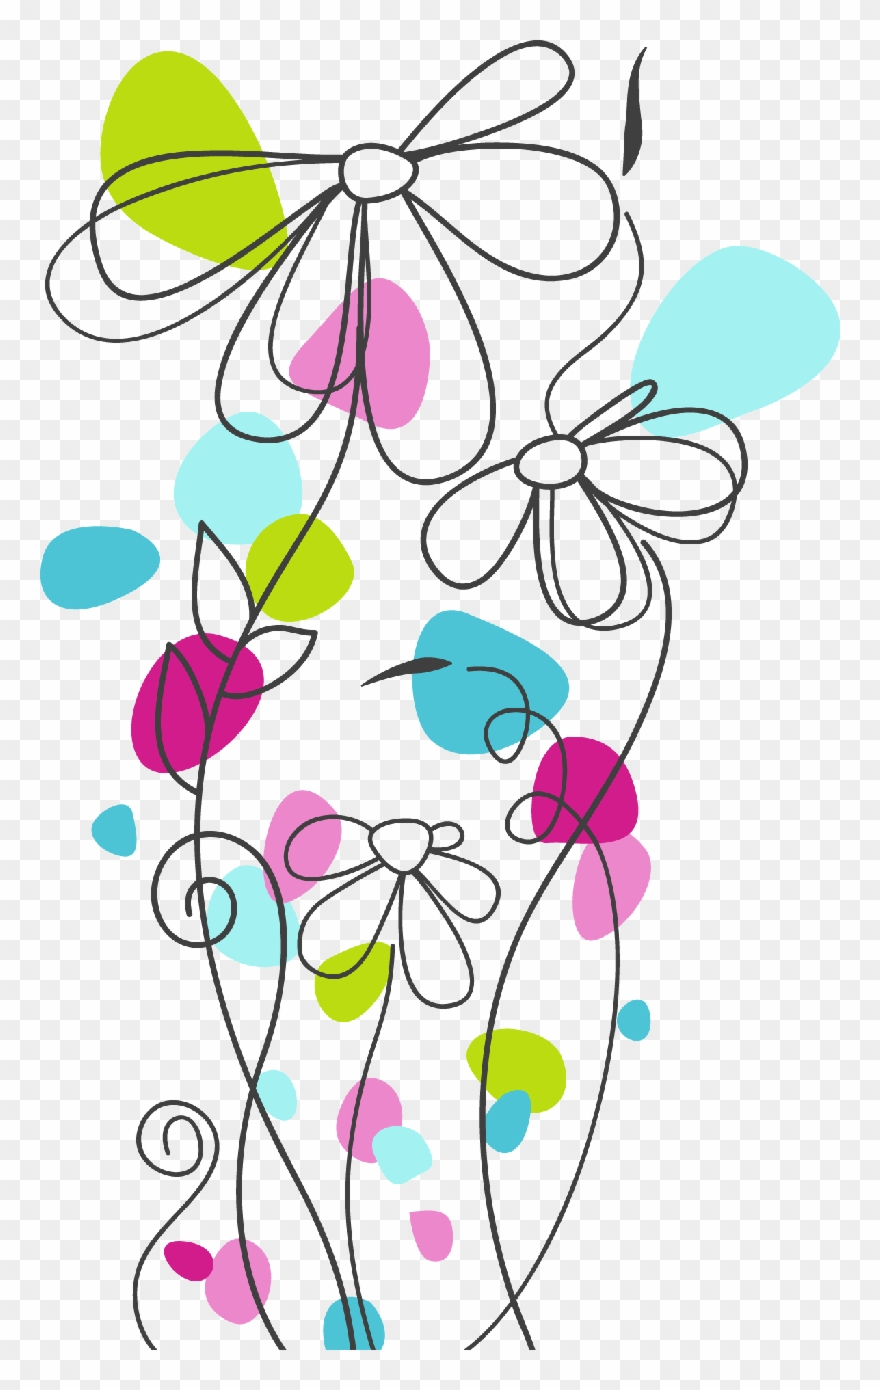 hight resolution of free motion embroidery vector de flores animadas png clipart